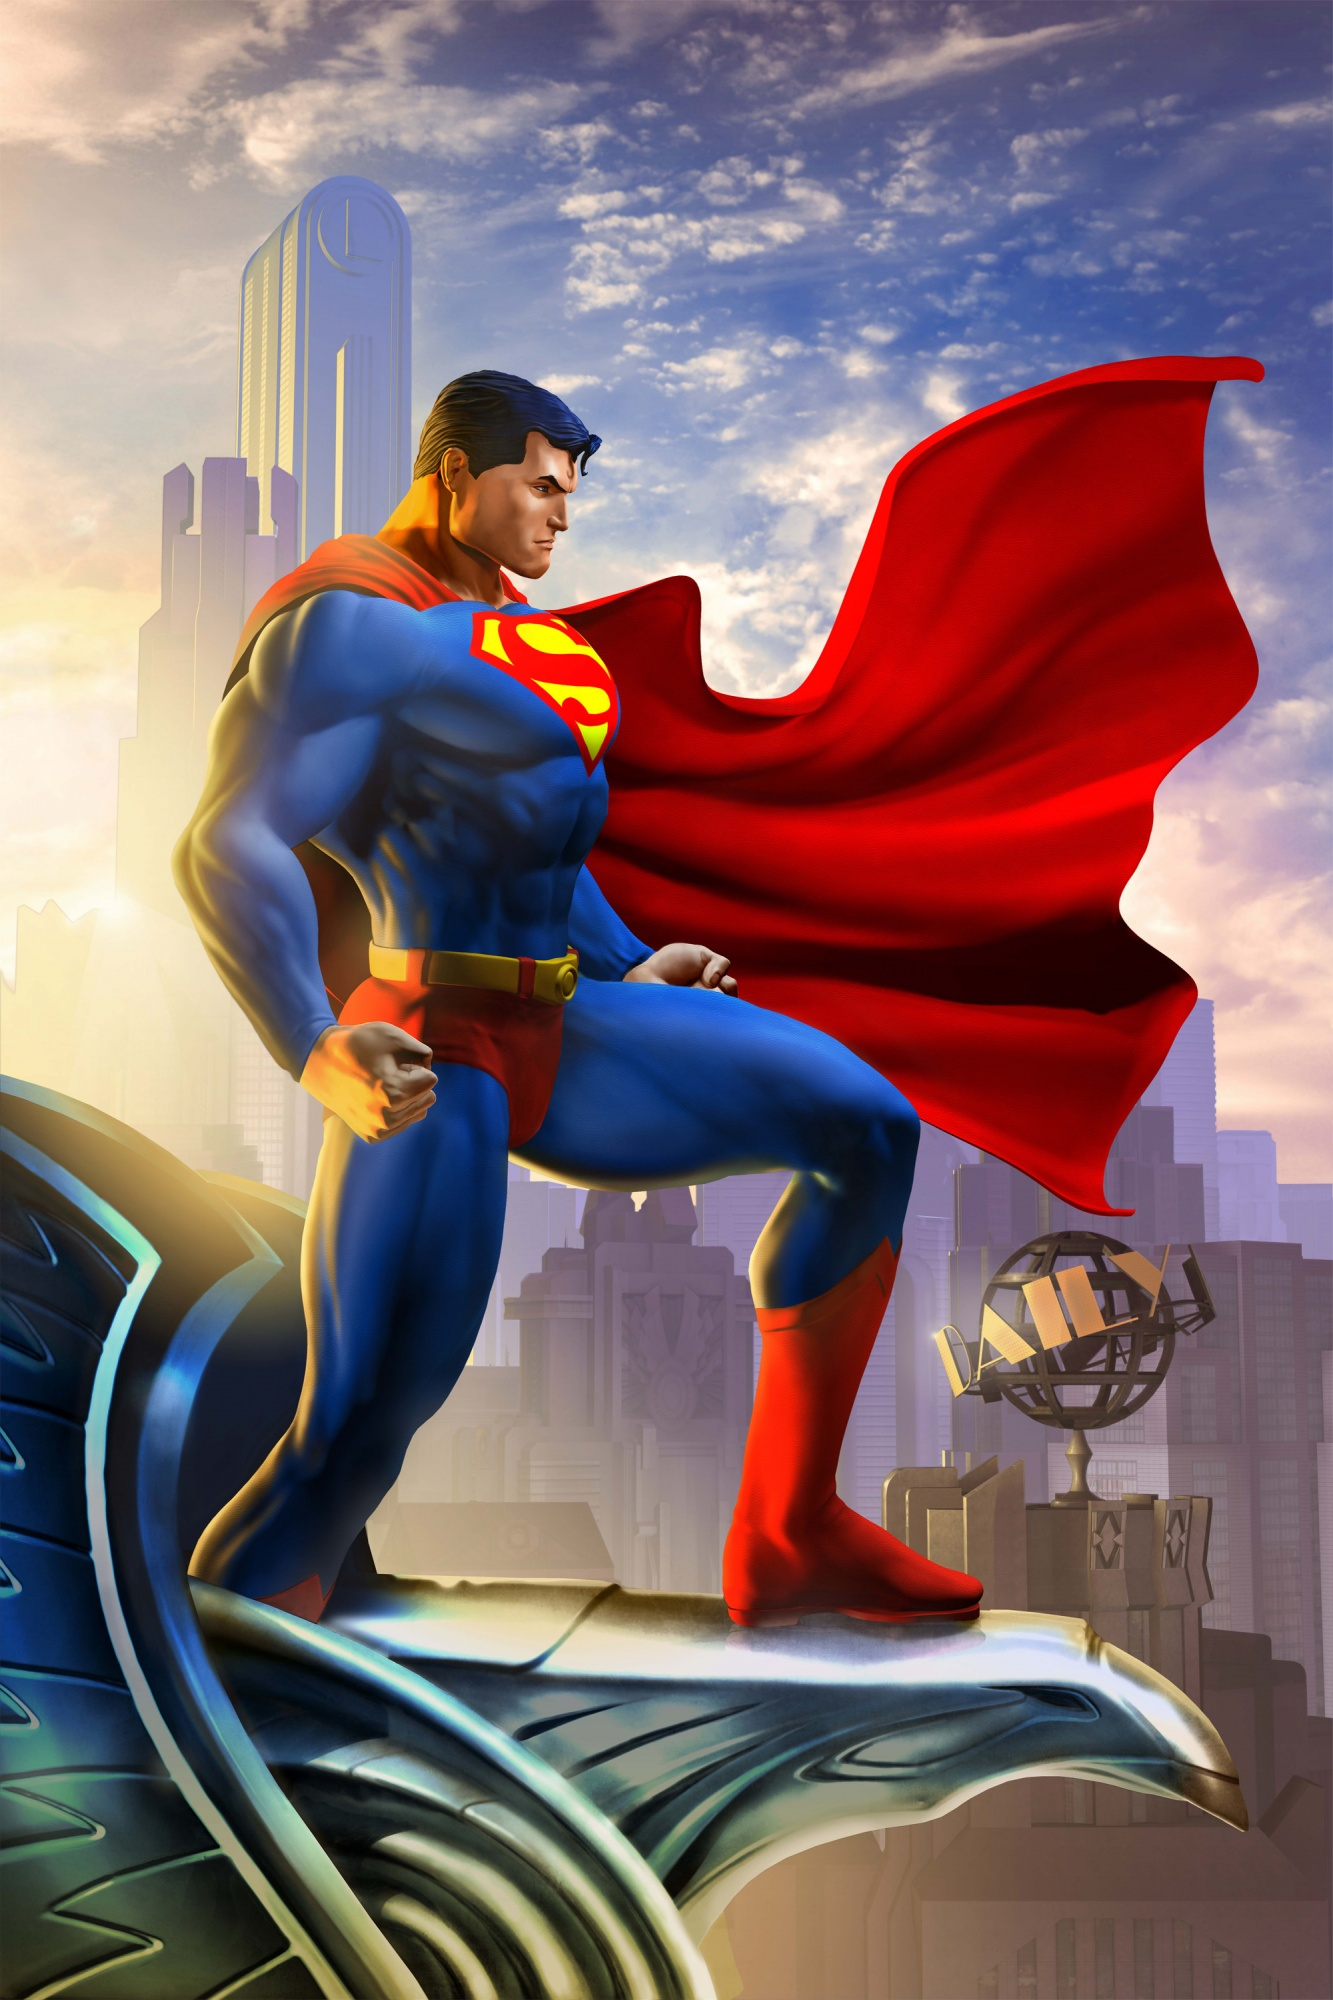 Dc Universe Online Full Hd Superman Hd Wallpaper For Mobile 1333x2000 Wallpaper Teahub Io